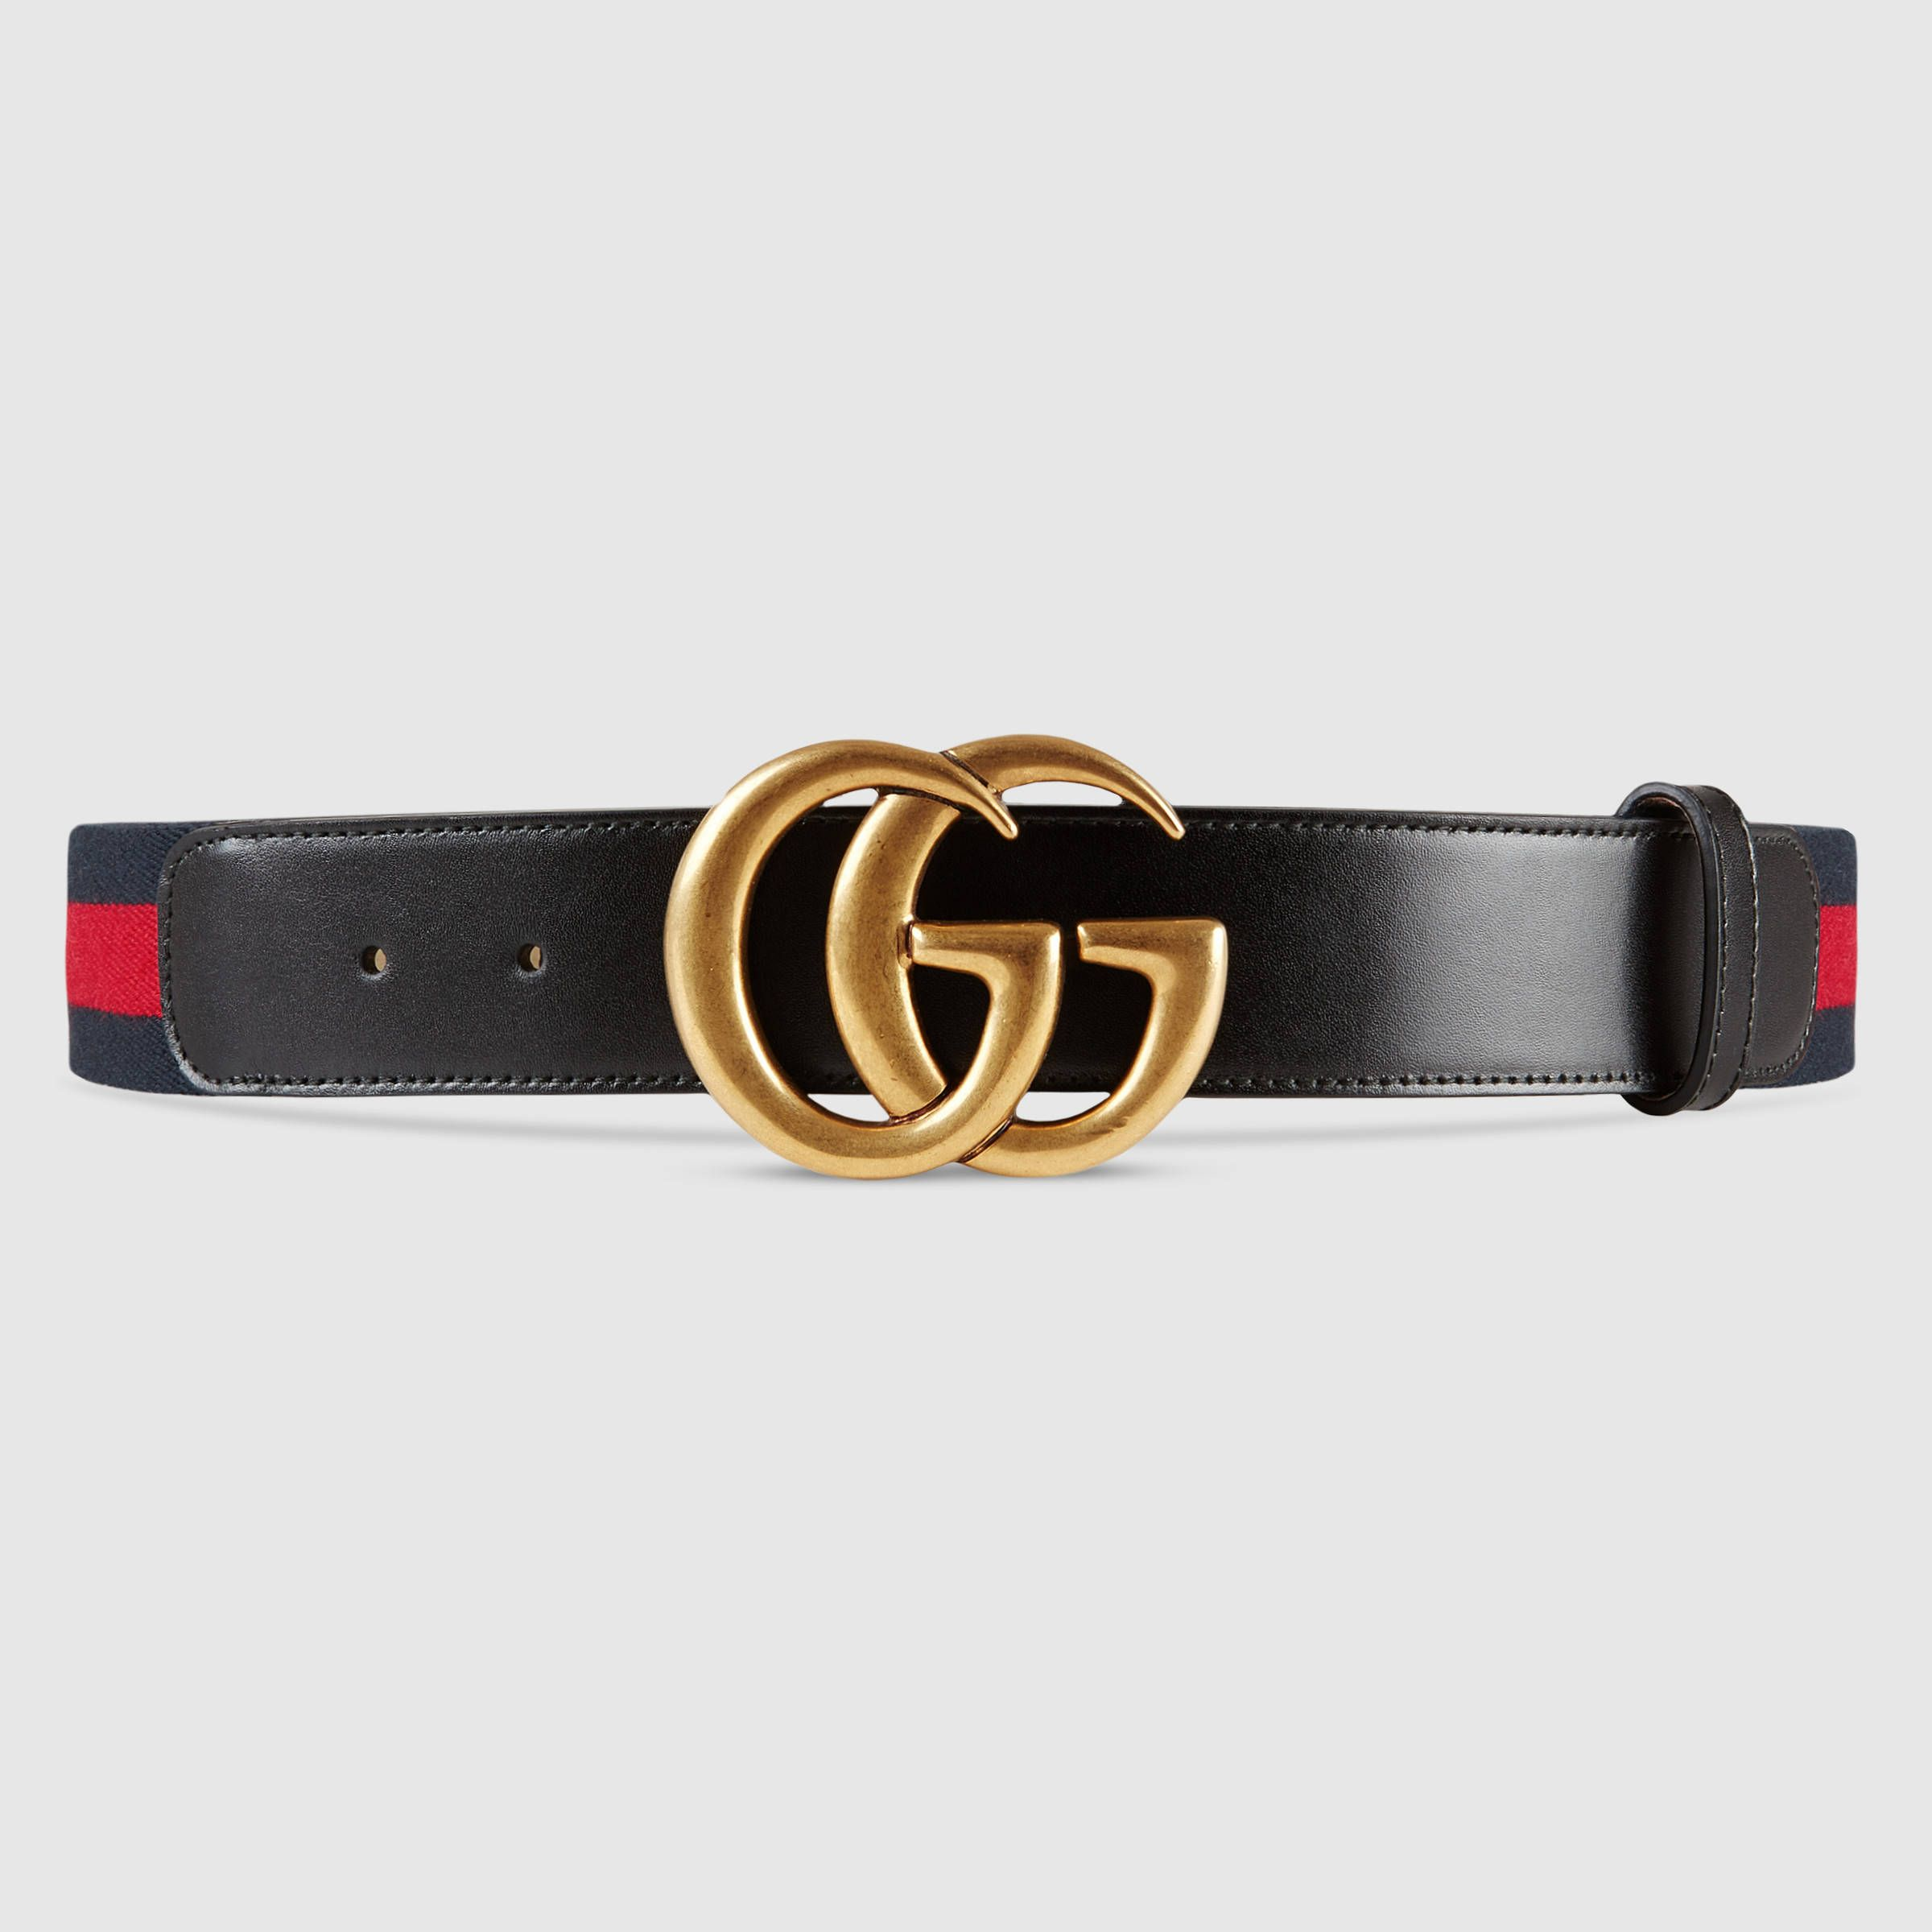 9bd55f588 Nylon Web belt with double G buckle - Gucci Men's Casual 409416H17WT8632